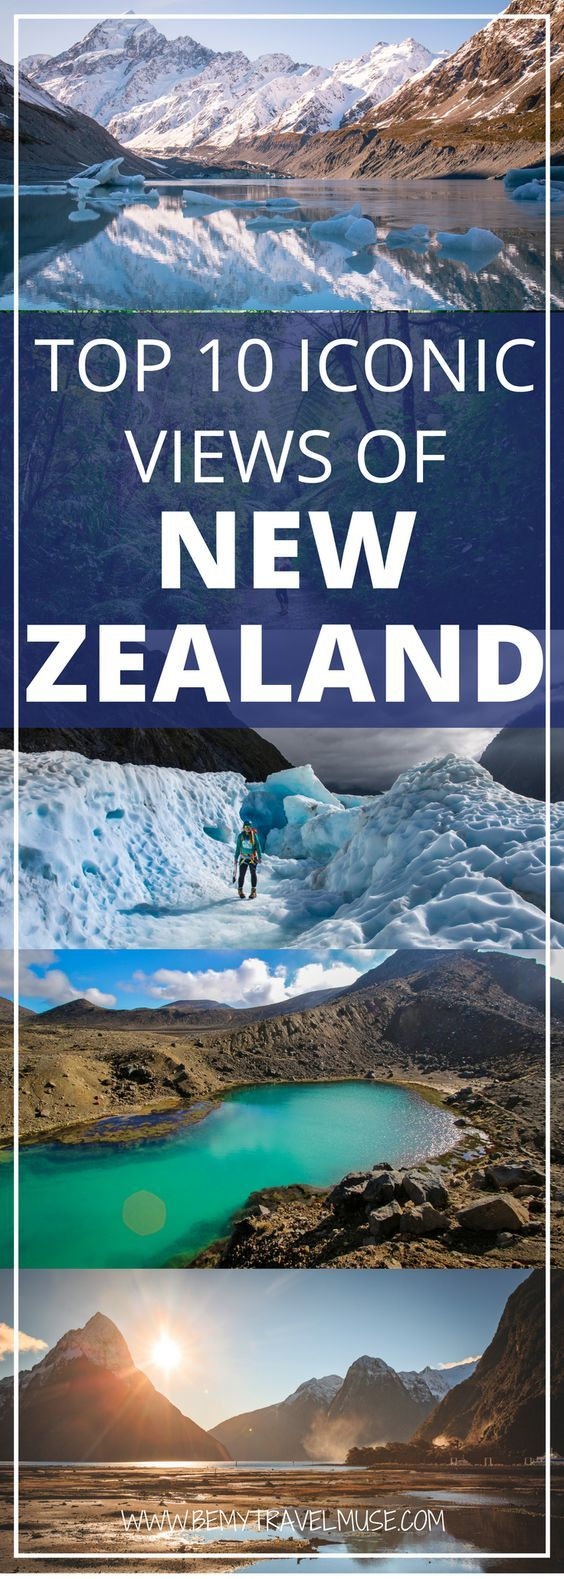 Traveling to New Zealand? Here are 10 iconic views that you truly can't miss. New Zealand is stunning and a photographer's dream. In this article, Liz from Young Adventuress rounds up top 10 iconic views of New Zealand that you need to add to your bucket list. Check it out! #NewZealand #NewZealandTravelTips